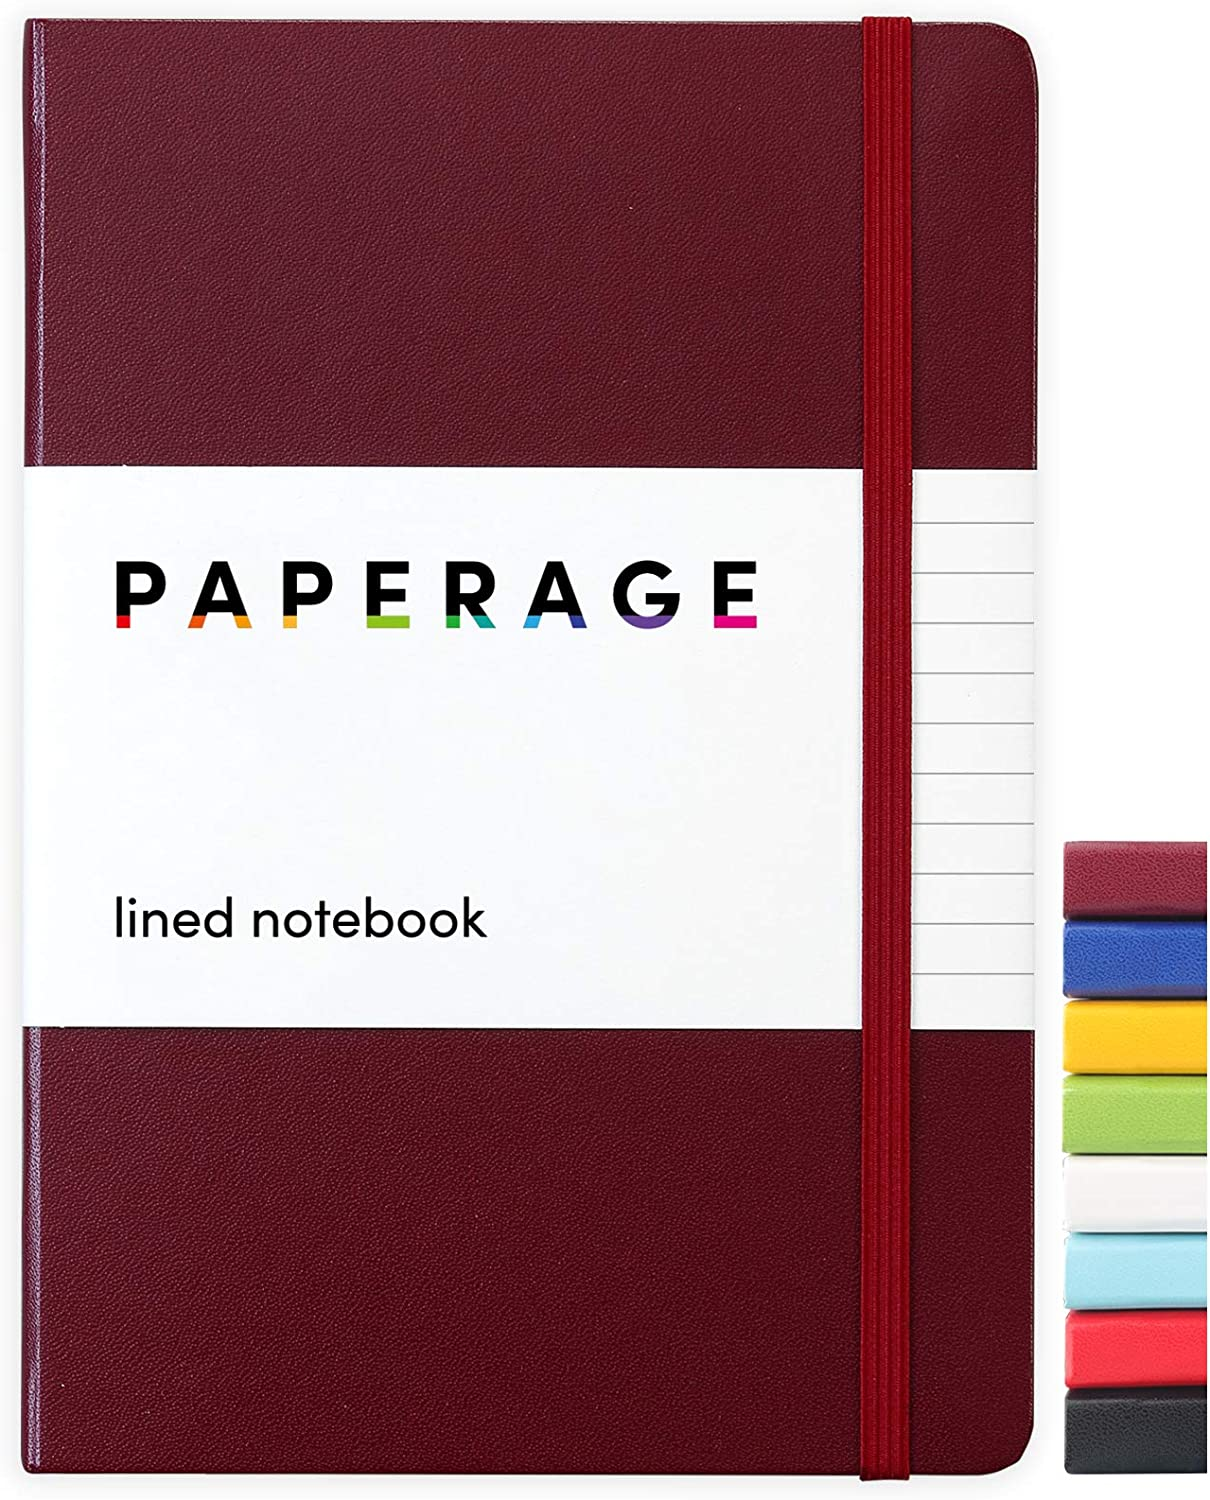 Paperage Lined Journal Notebook, Hard Cover, Medium 5.7 x 8 inches, 100 gsm Thick Paper (Burgundy, Ruled)